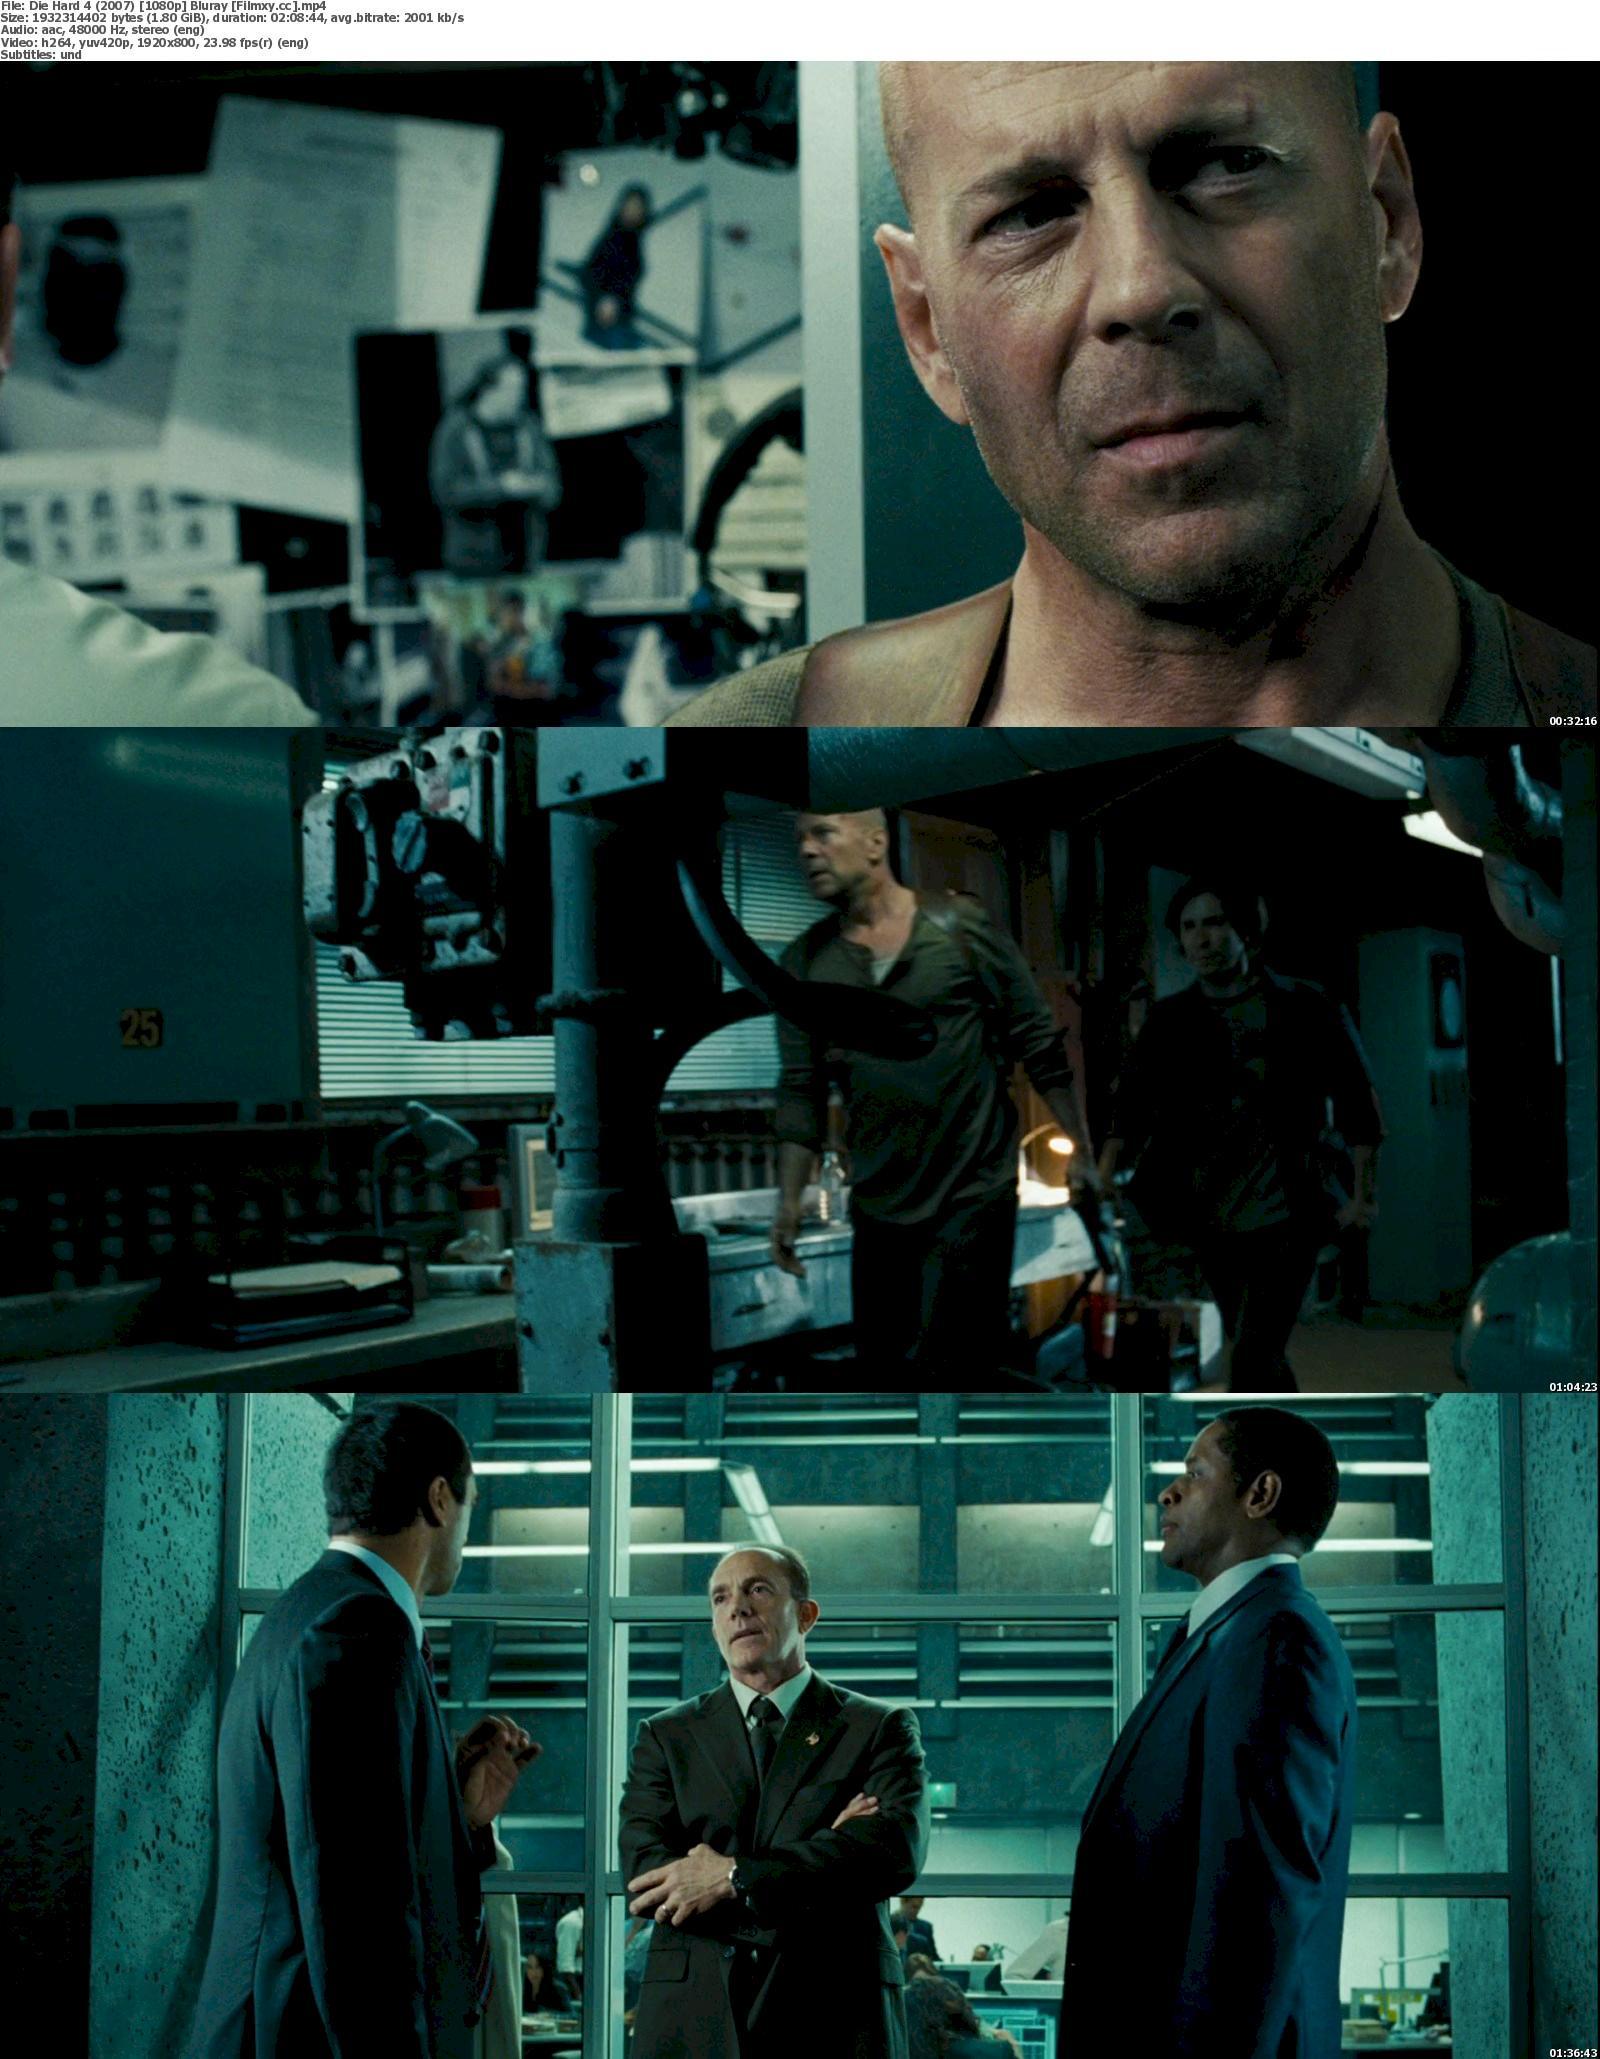 Die Hard 4 (2007) 720p & 1080p Bluray Free Download 1080p Screenshot